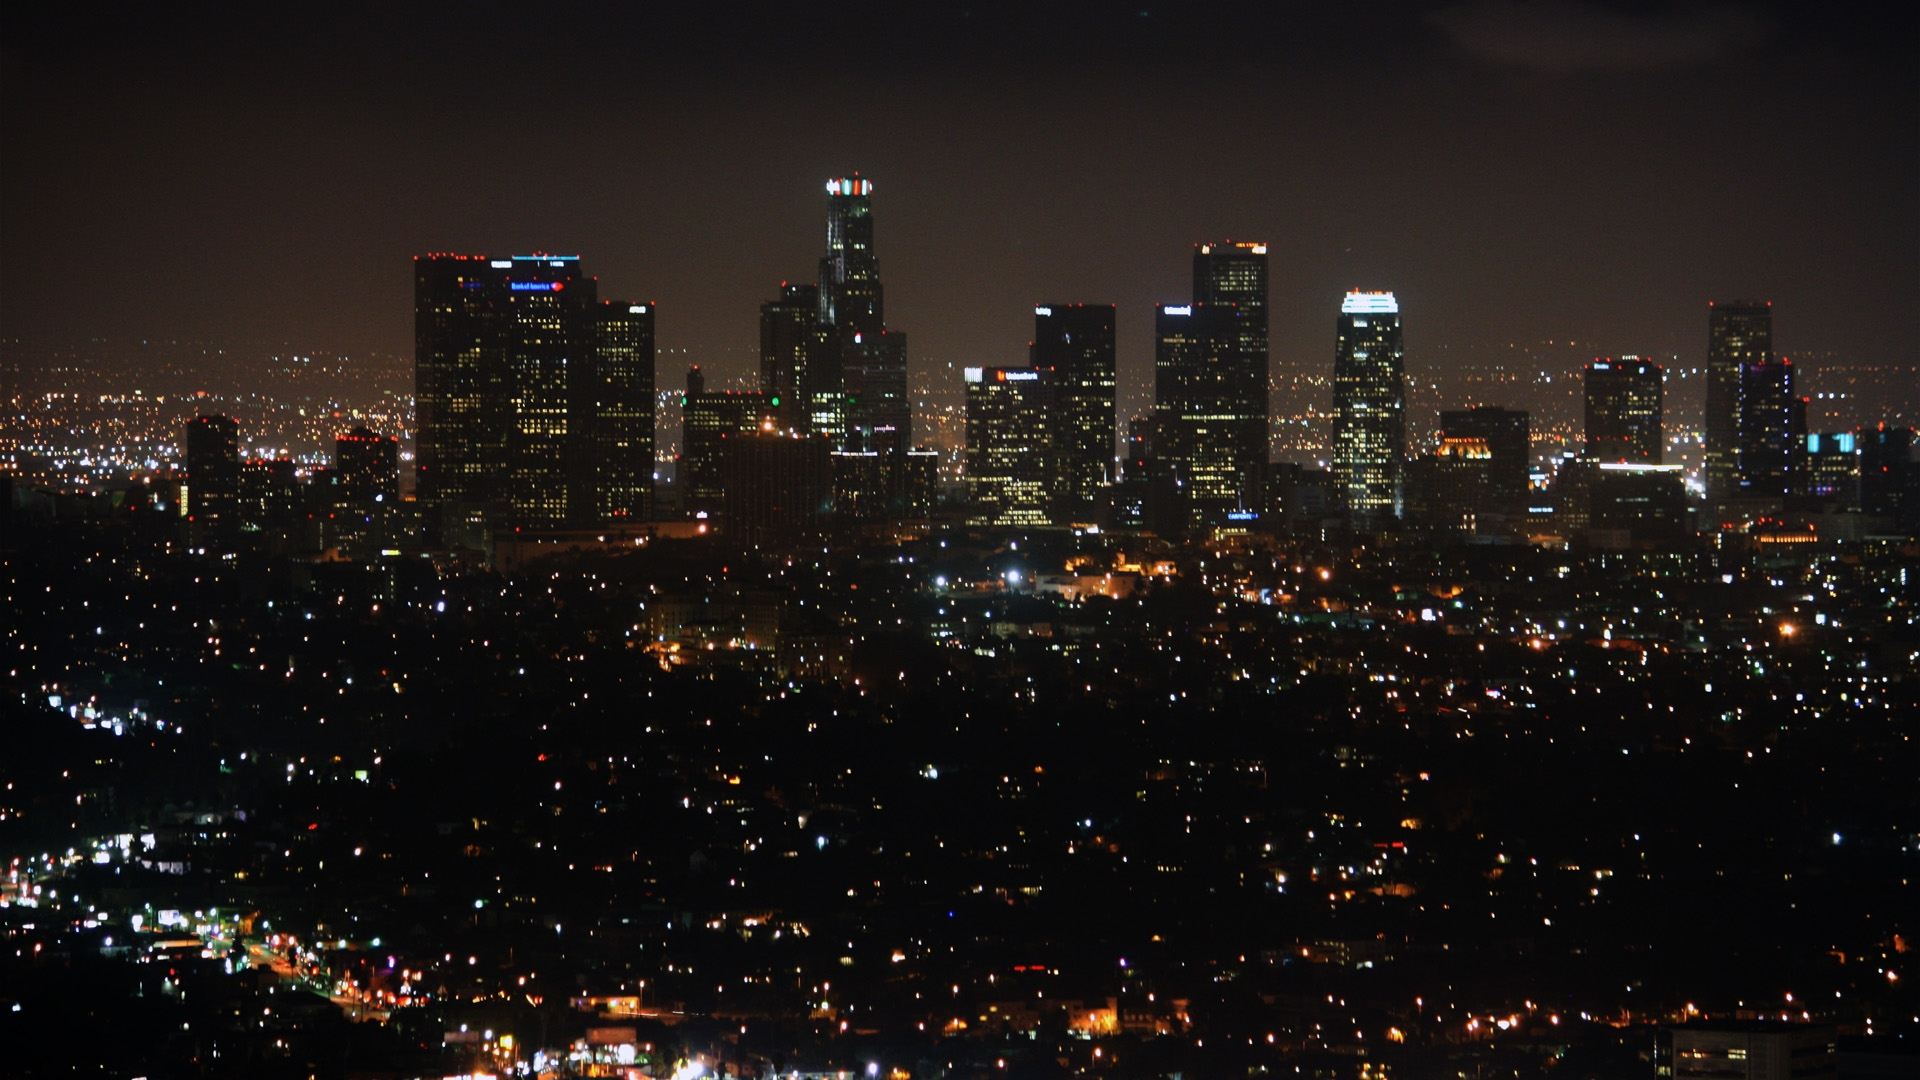 los angeles hd